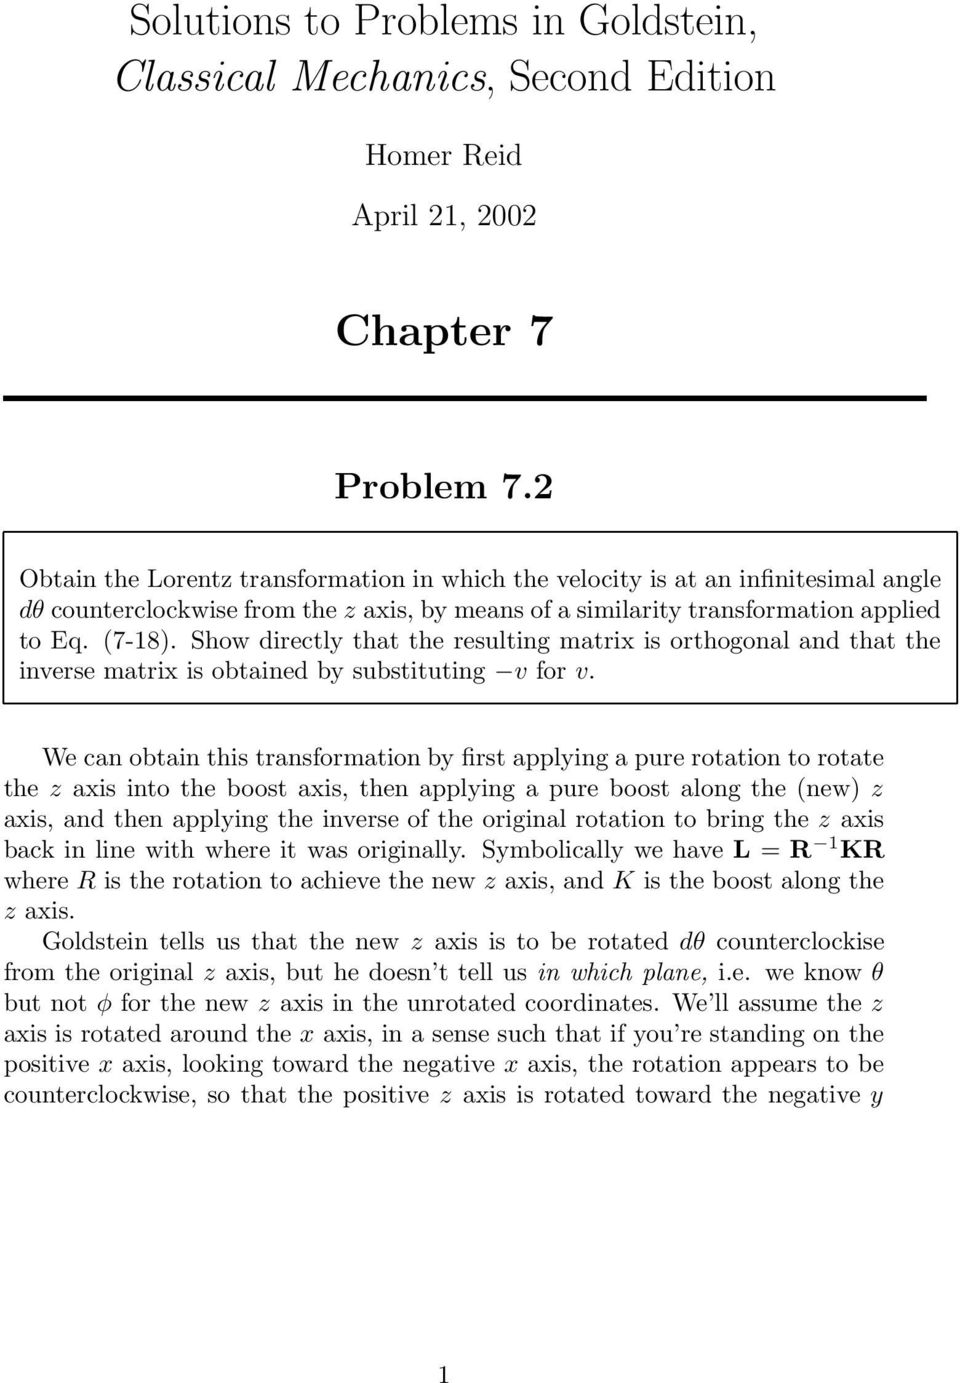 Solutions to Problems in Goldstein, Classical Mechanics, Second